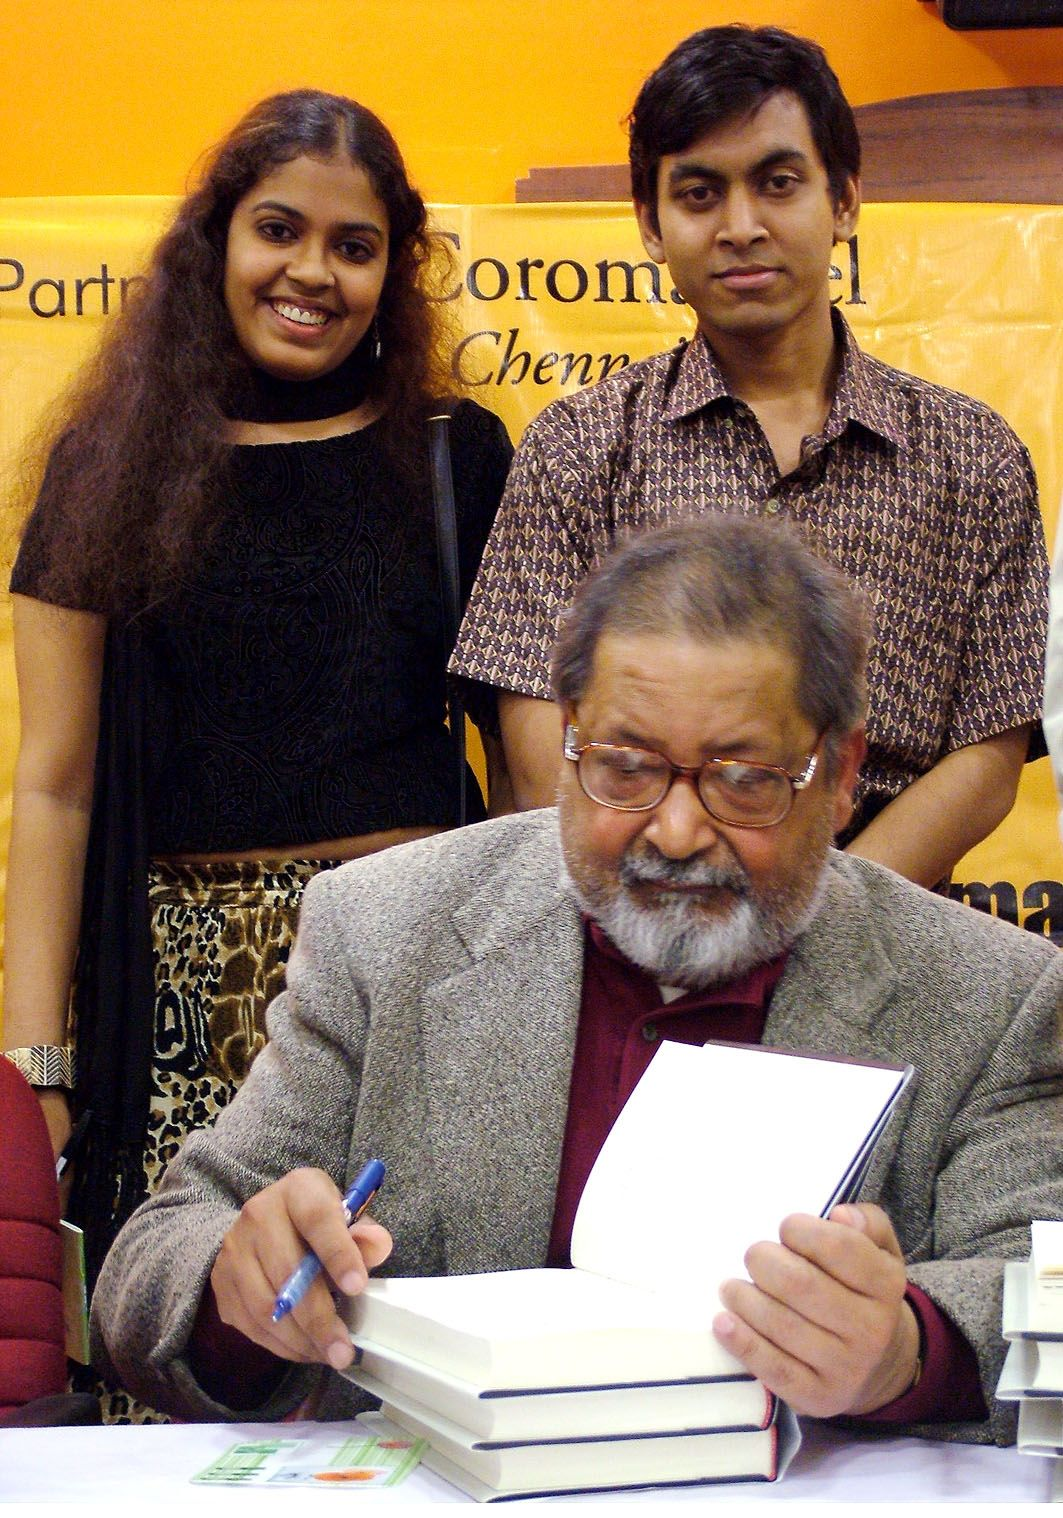 LANDMARK. 2004. - With British Writer and Nobel Laureate V.S. Naipaul during his launch of 'MAGIC SEEDS.'KEYWORDS: V.S Naipaul, Nish Amarnath, Magic Seeds, Book launches, Nobel Laureates, Nobel Prize in Literature.